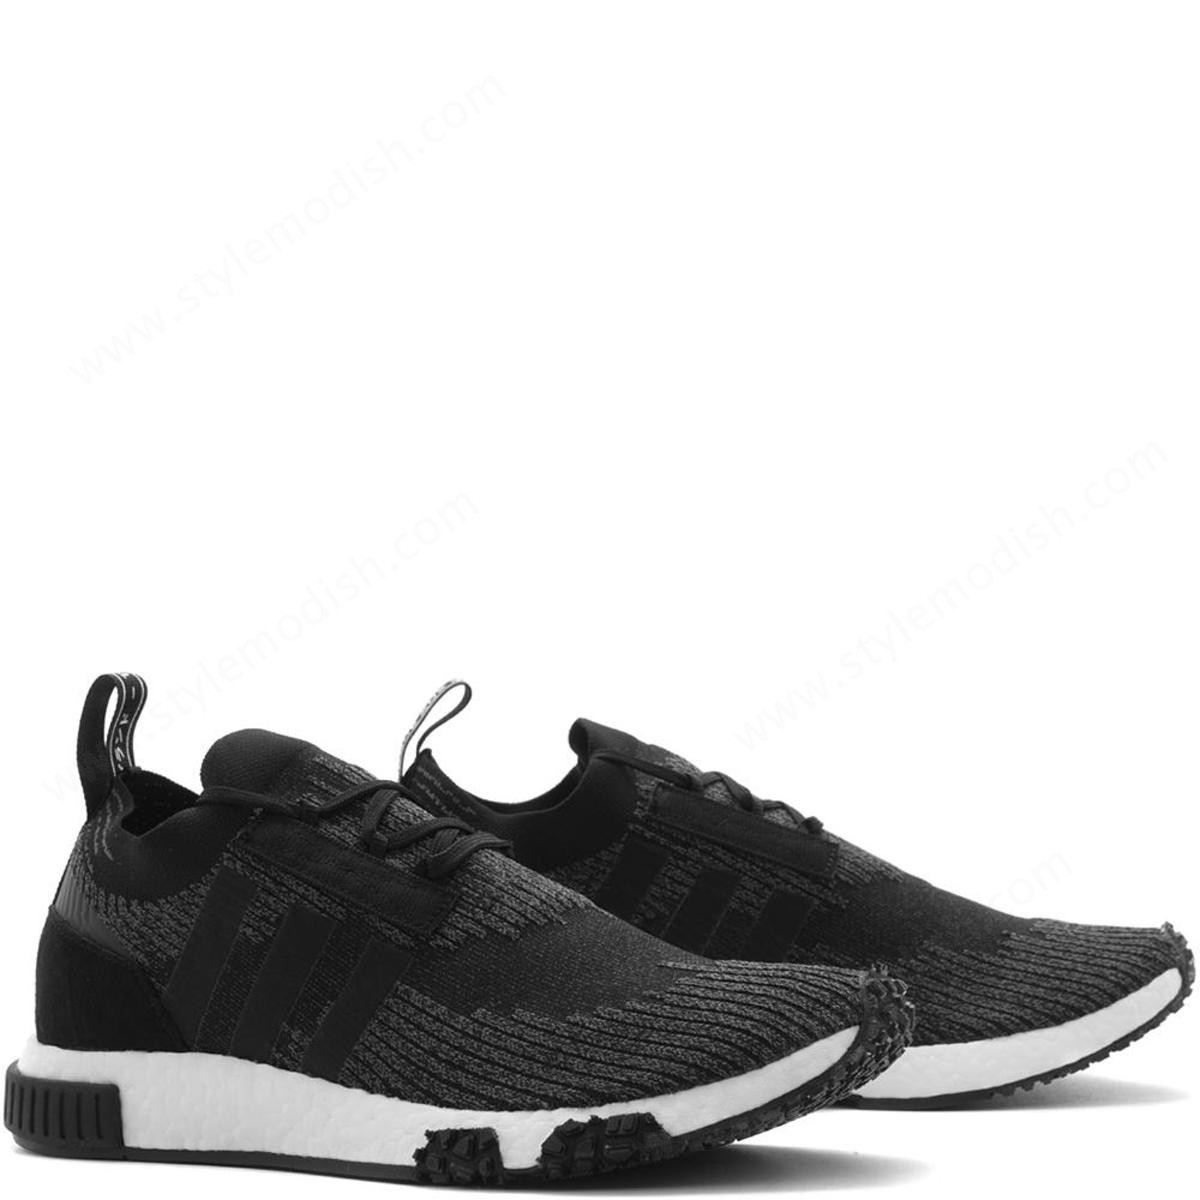 Man's Adidas Nmd Racer Pk Shoe - Core Black - -2